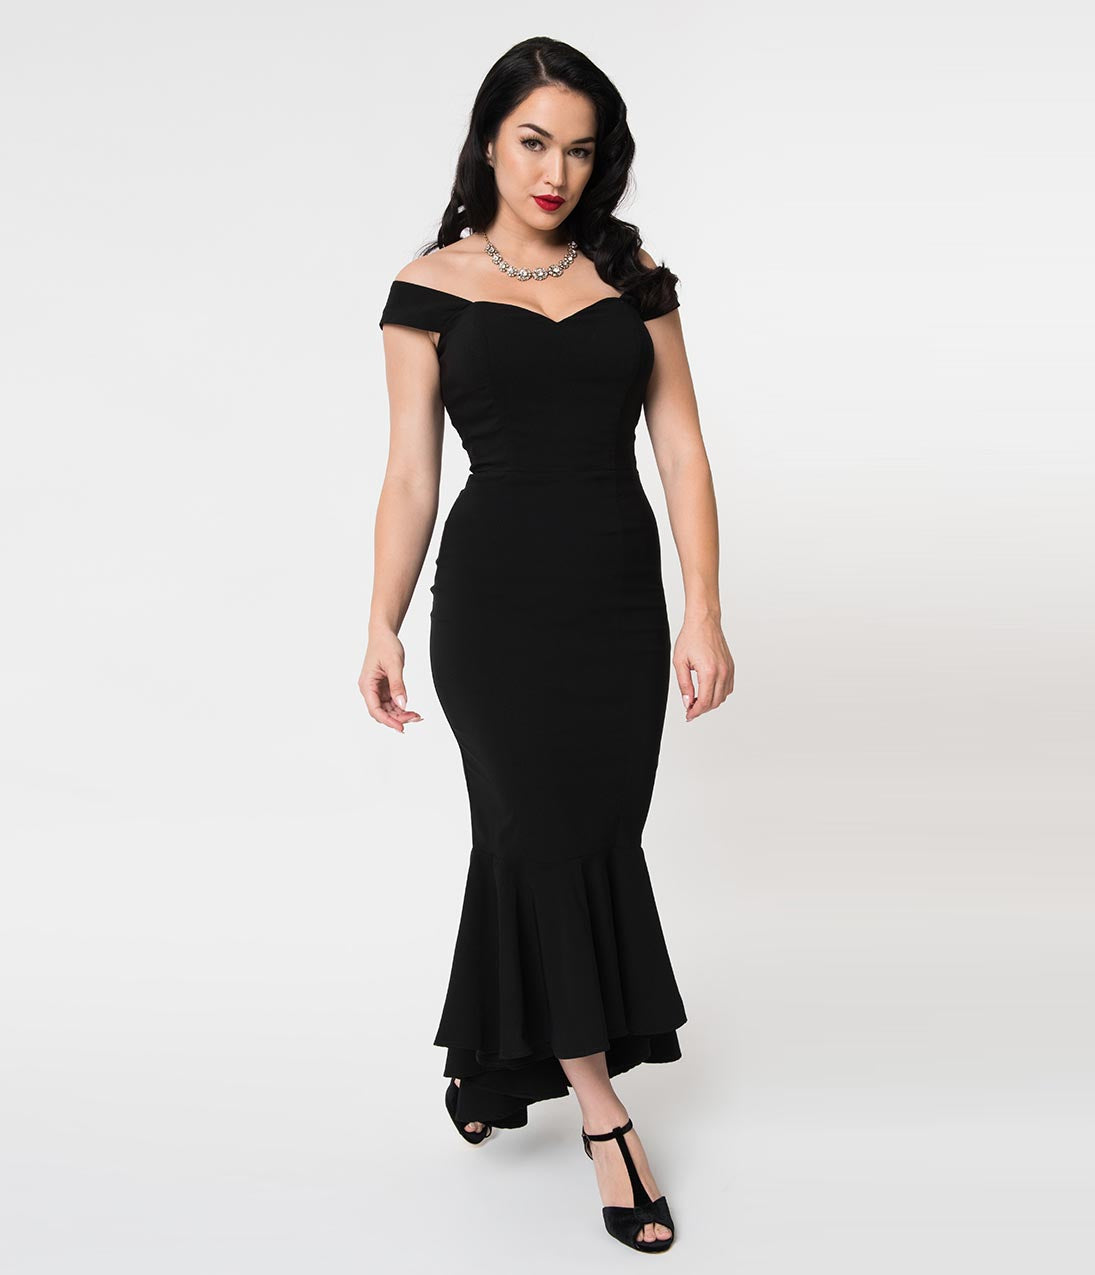 1940s Evening, Prom, Party, Formal, Ball Gowns Collectif 1940S Style Black Off Shoulder Fishtail Valentina Fitted Dress $68.00 AT vintagedancer.com